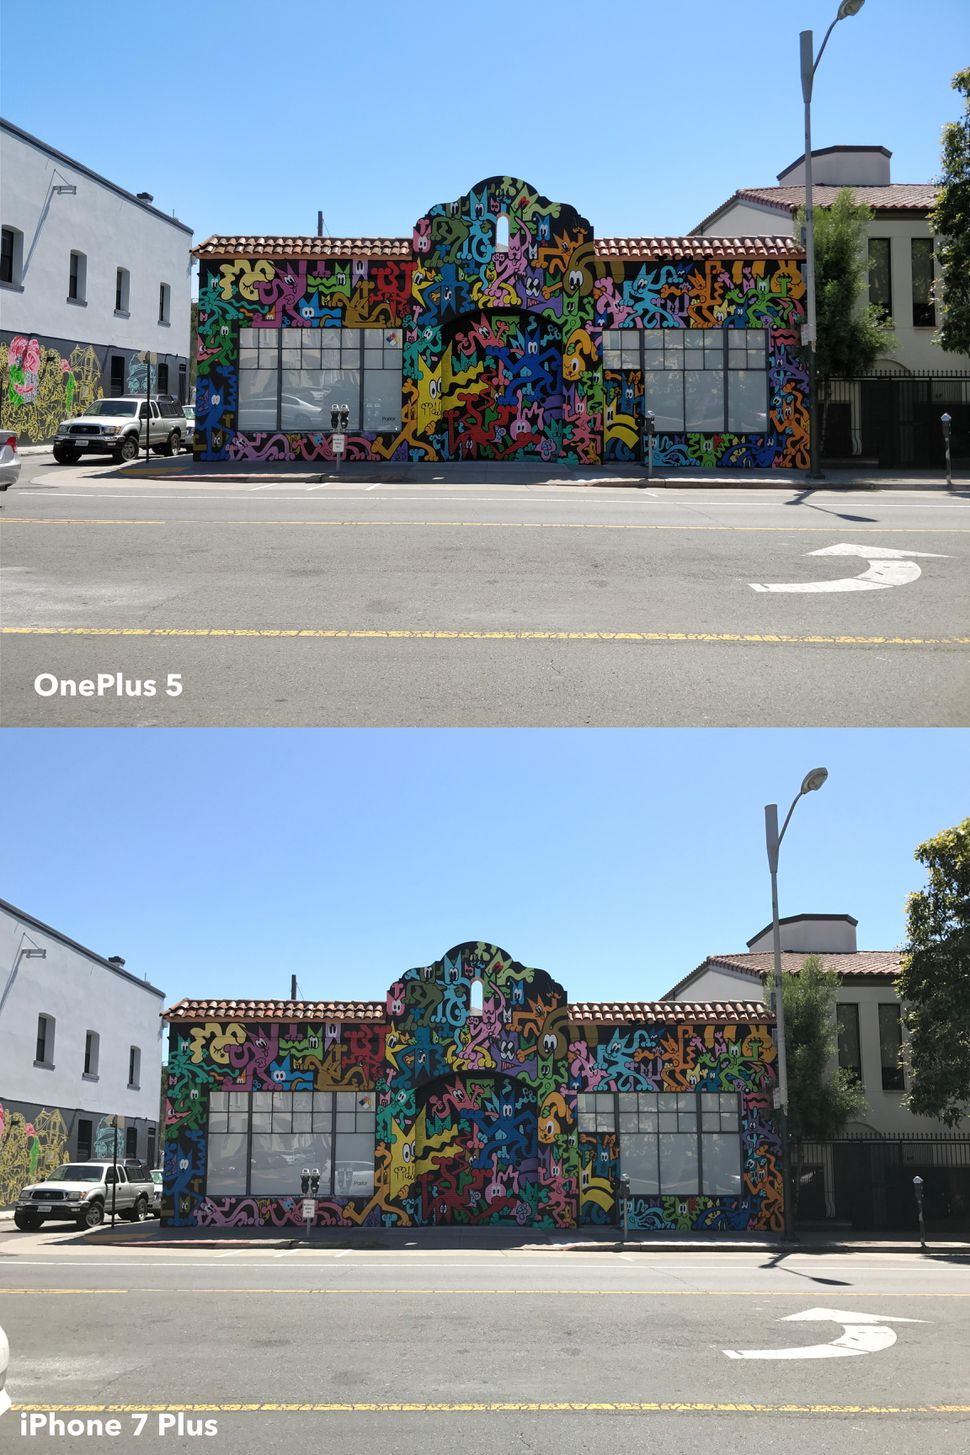 oneplus-5-cat-graffiti-compare